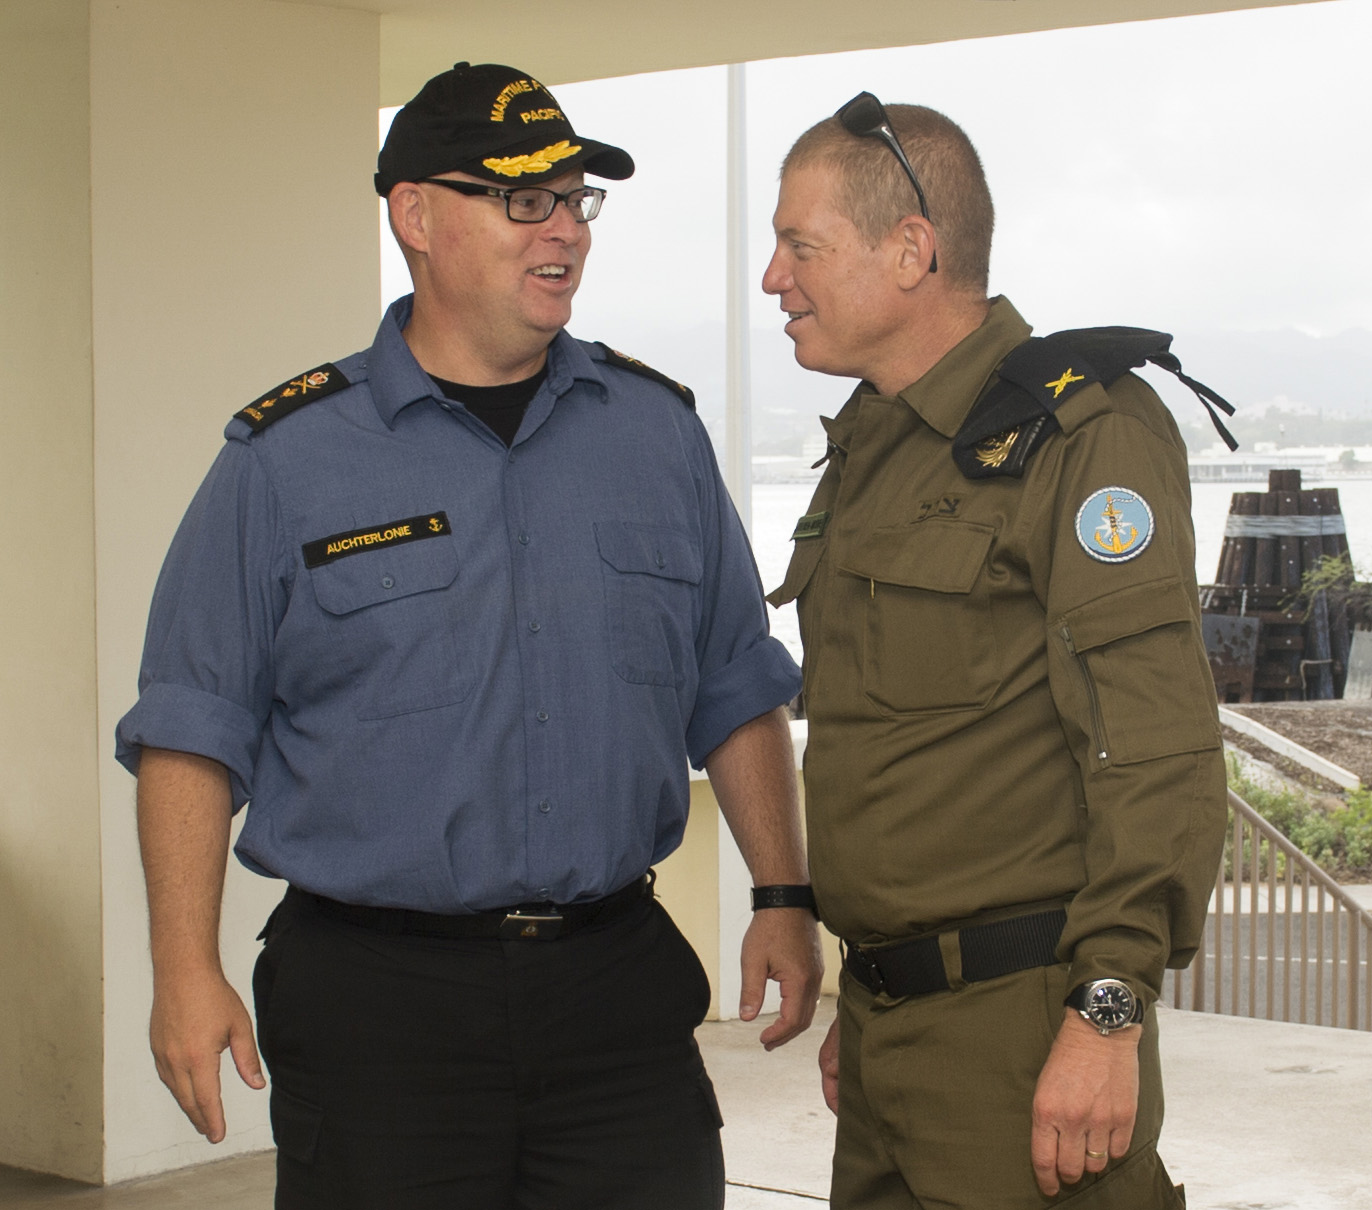 Rear-Admiral Bob Auchterlonie and RAdm Ido Ben-Moshe